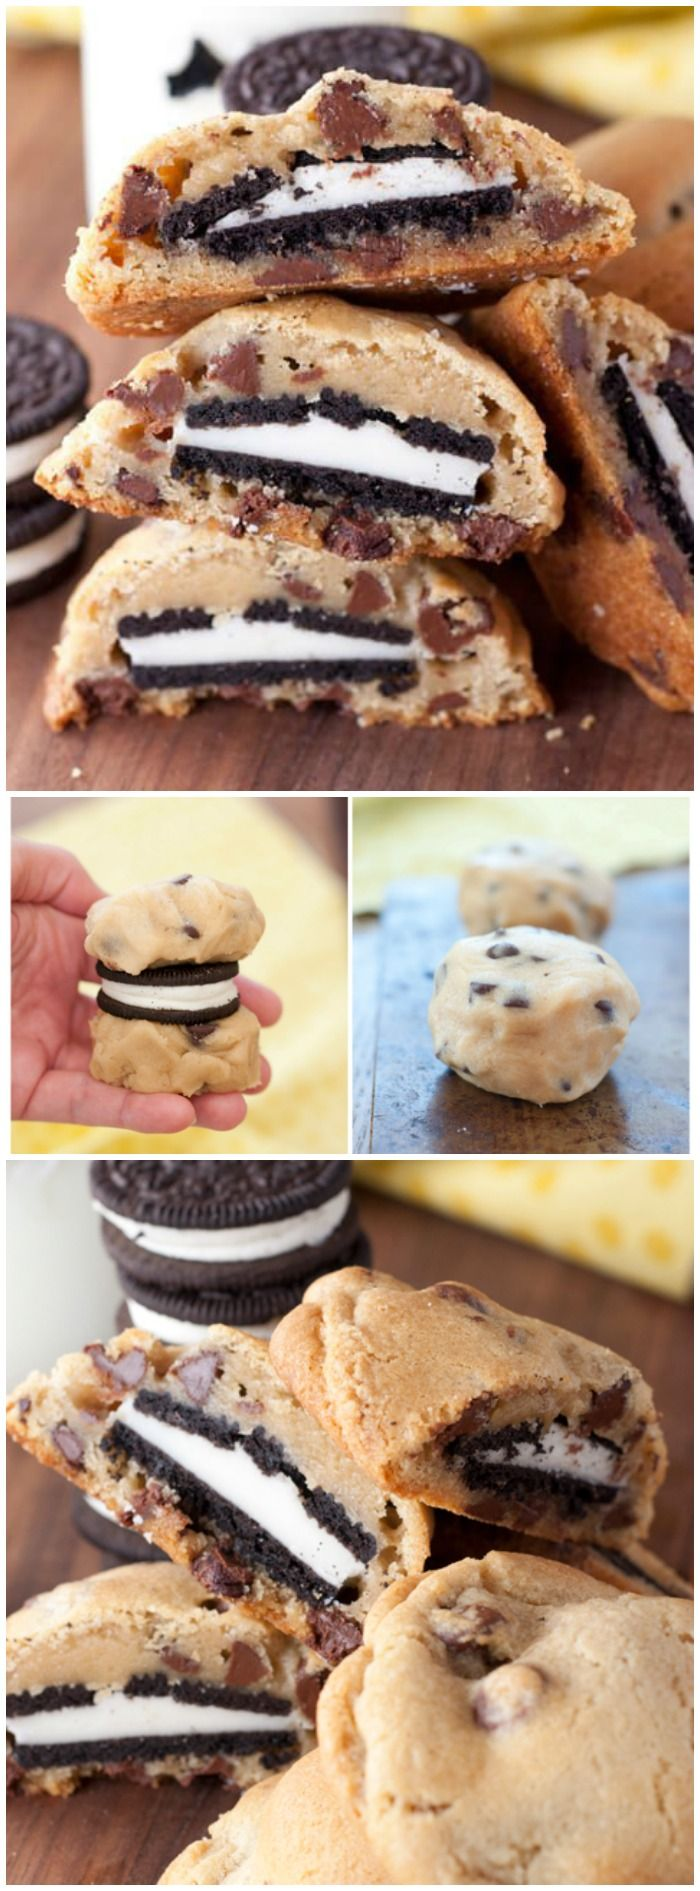 OREO Stuffed Chocolate Chip Cookies Recipe || Featured on www.thebestblogrecipes.com